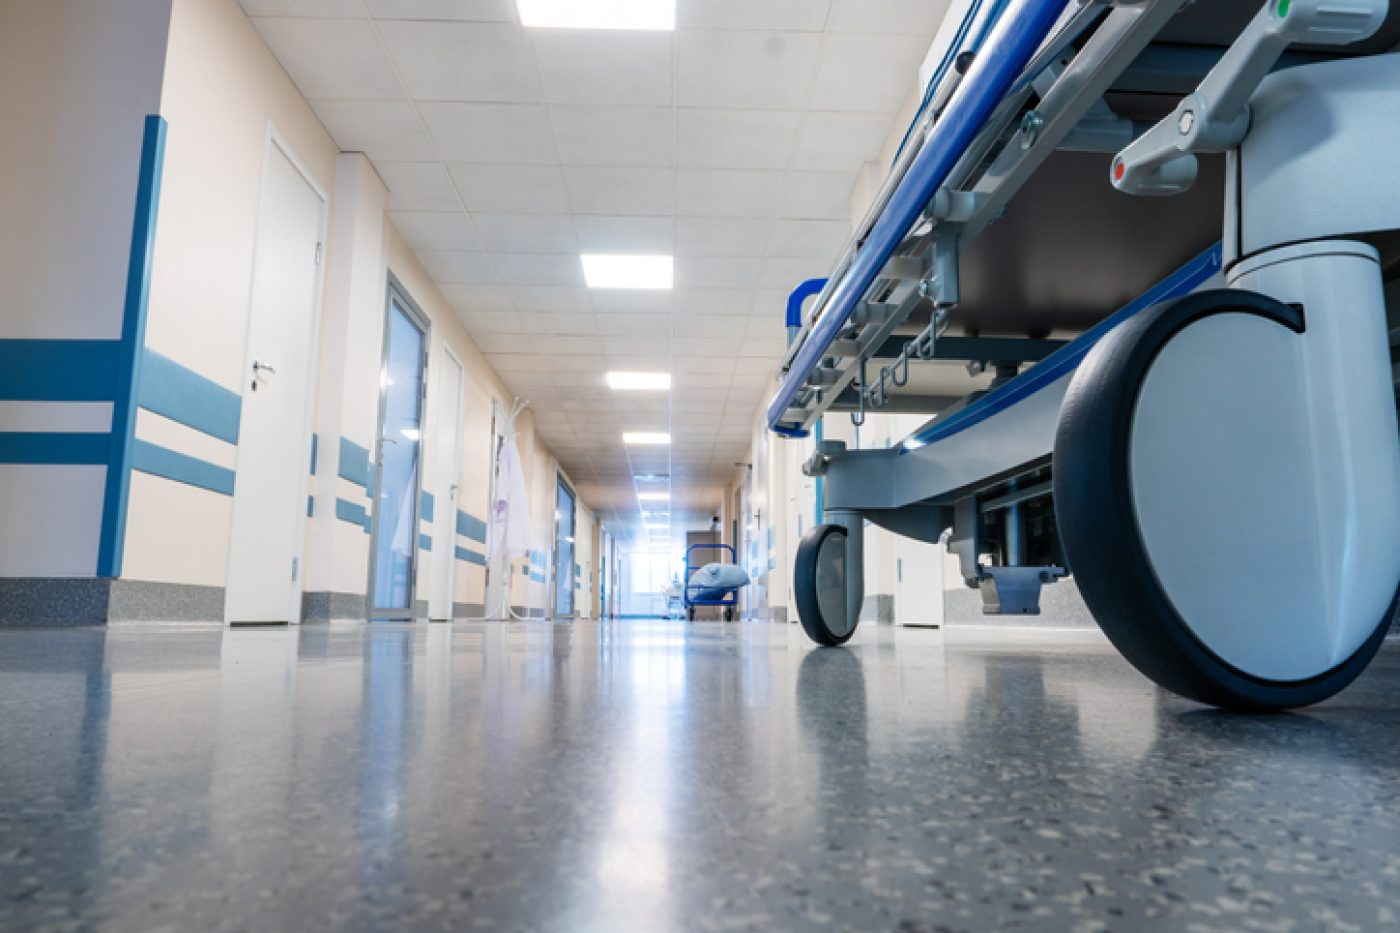 View from ground floor up. Hospital bed on wheels in corridor. h